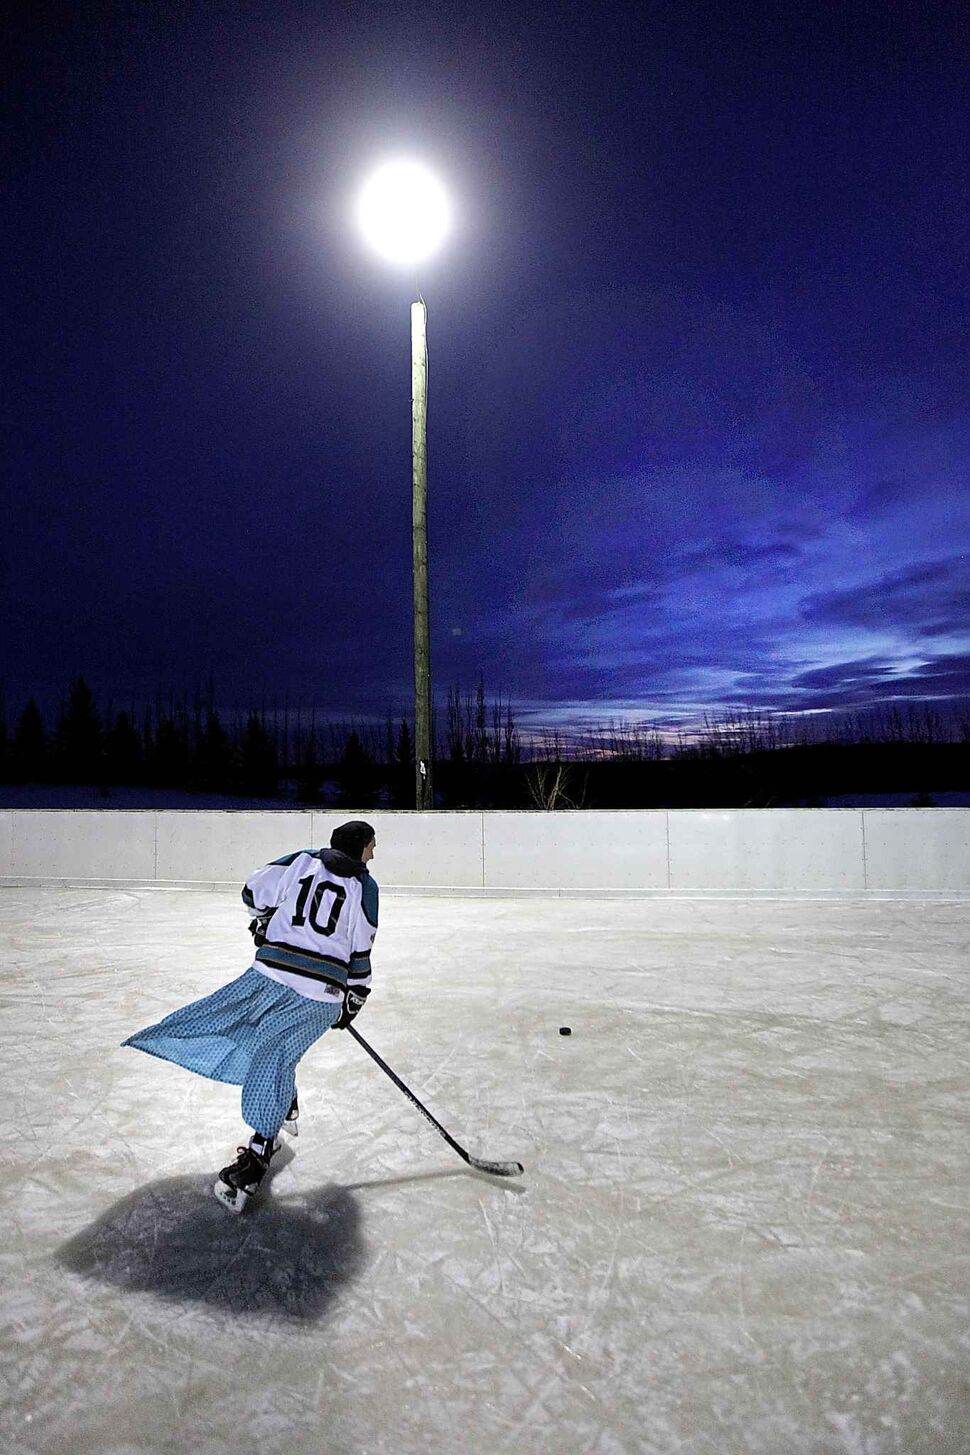 PHIL HOSSACK / WINNIPEG FREE PRESS</p><p>Tirzah Maendel circles back towards another shot at the net on the Baker Community hockey rink.</p>